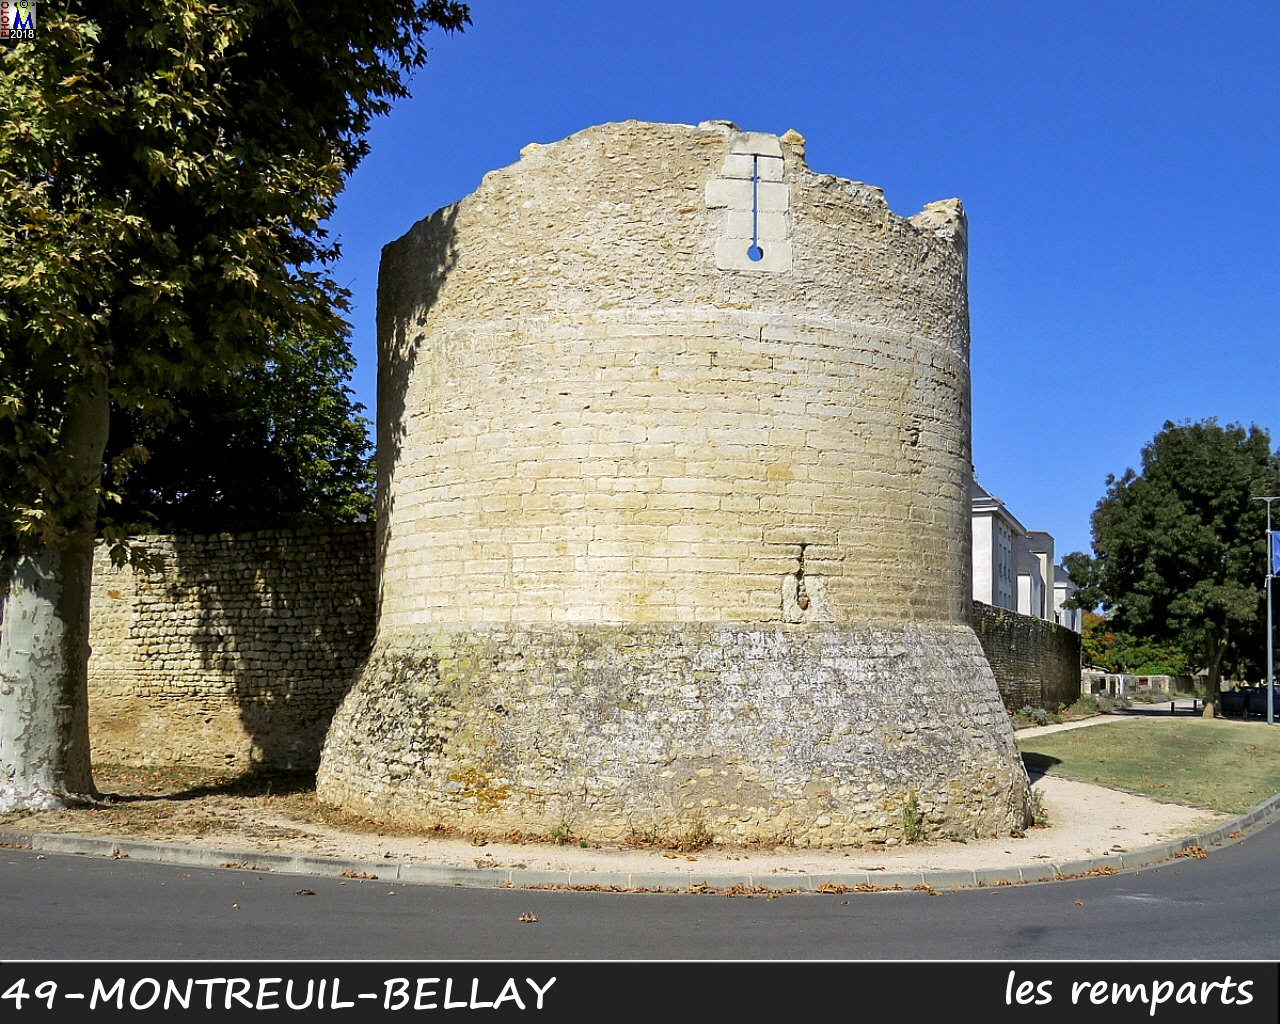 49MONTREUIL-BELLAY_remparts_1010.jpg